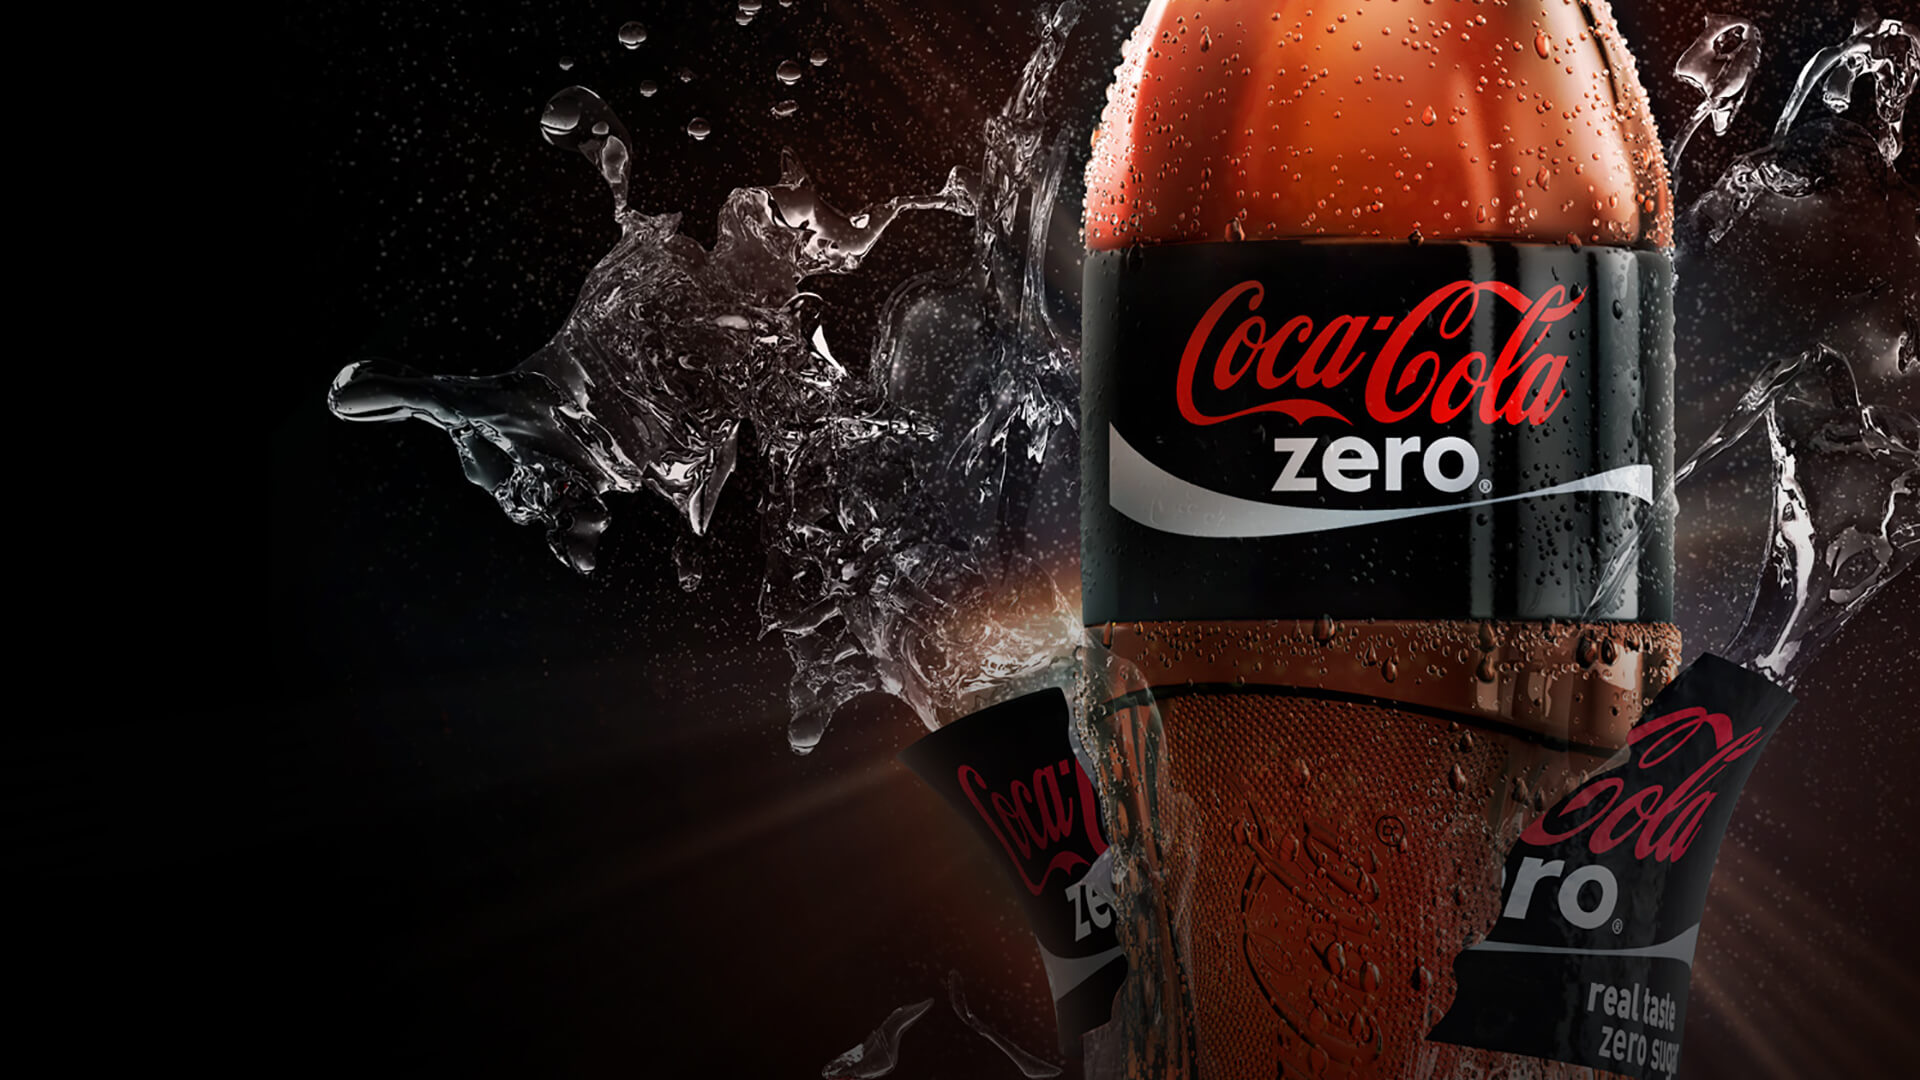 Computer generated image of coca-cola bottle exploding